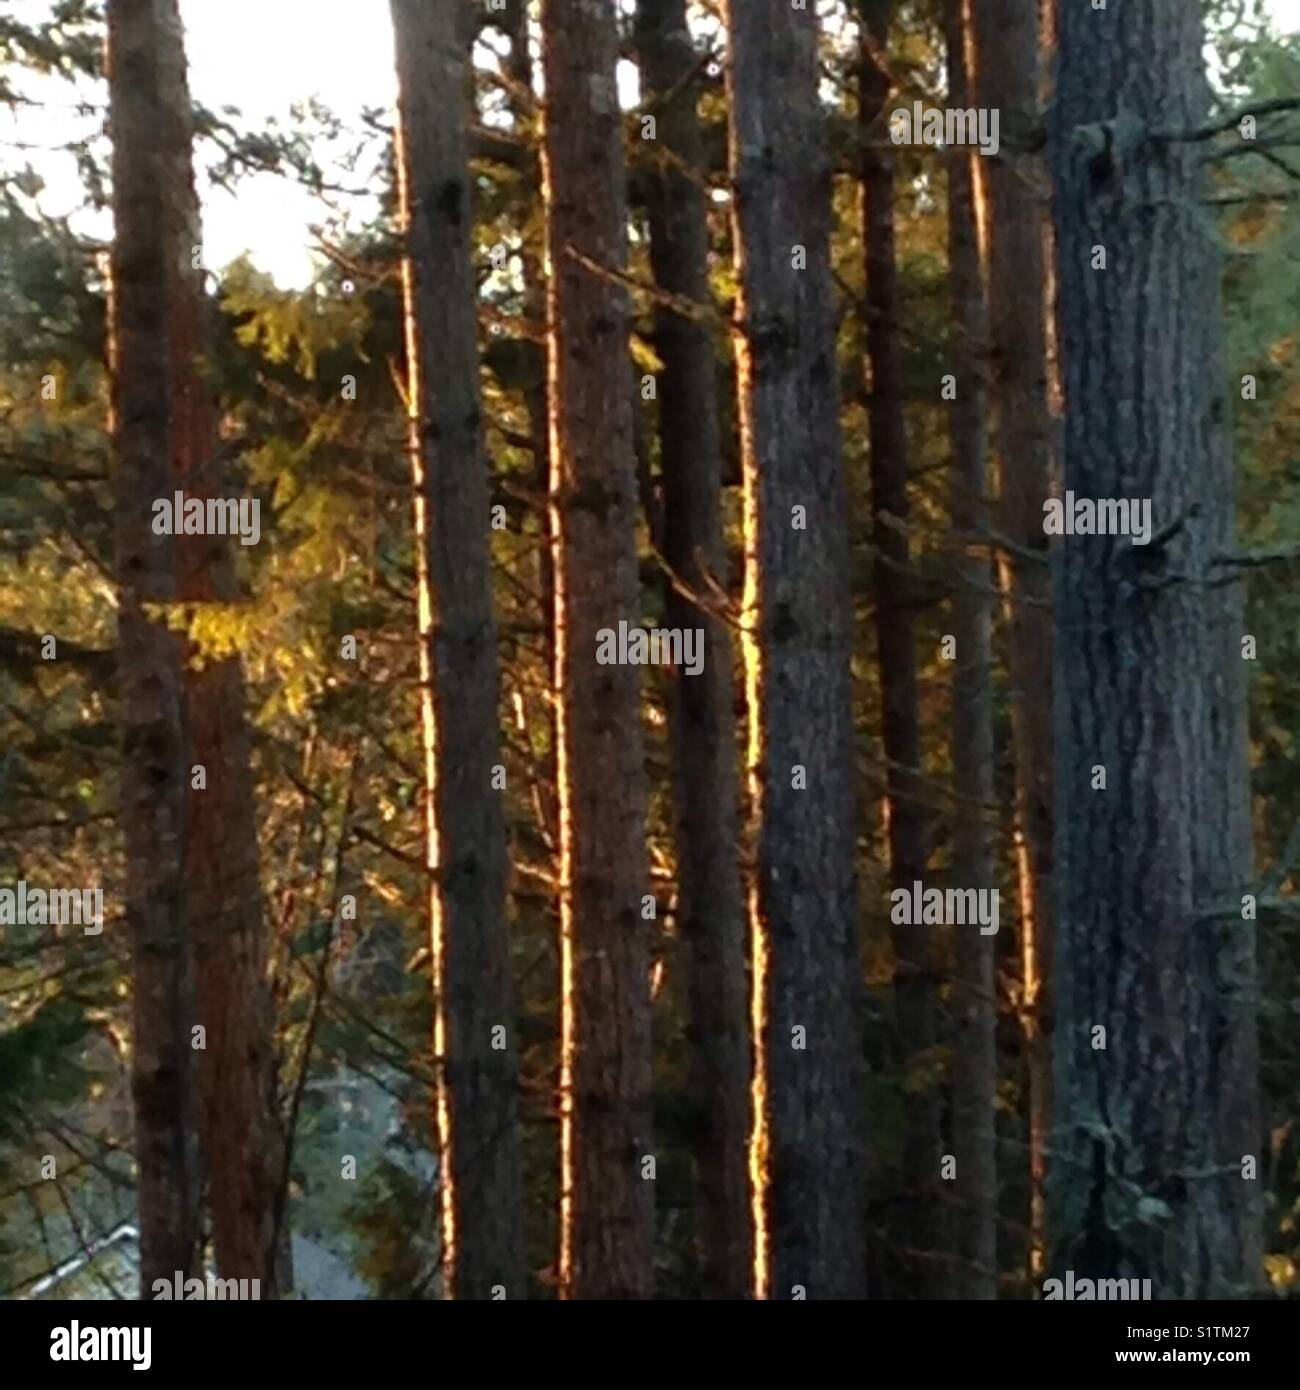 Sunsetting and highlighting the tall Evergreen trees - Stock Image